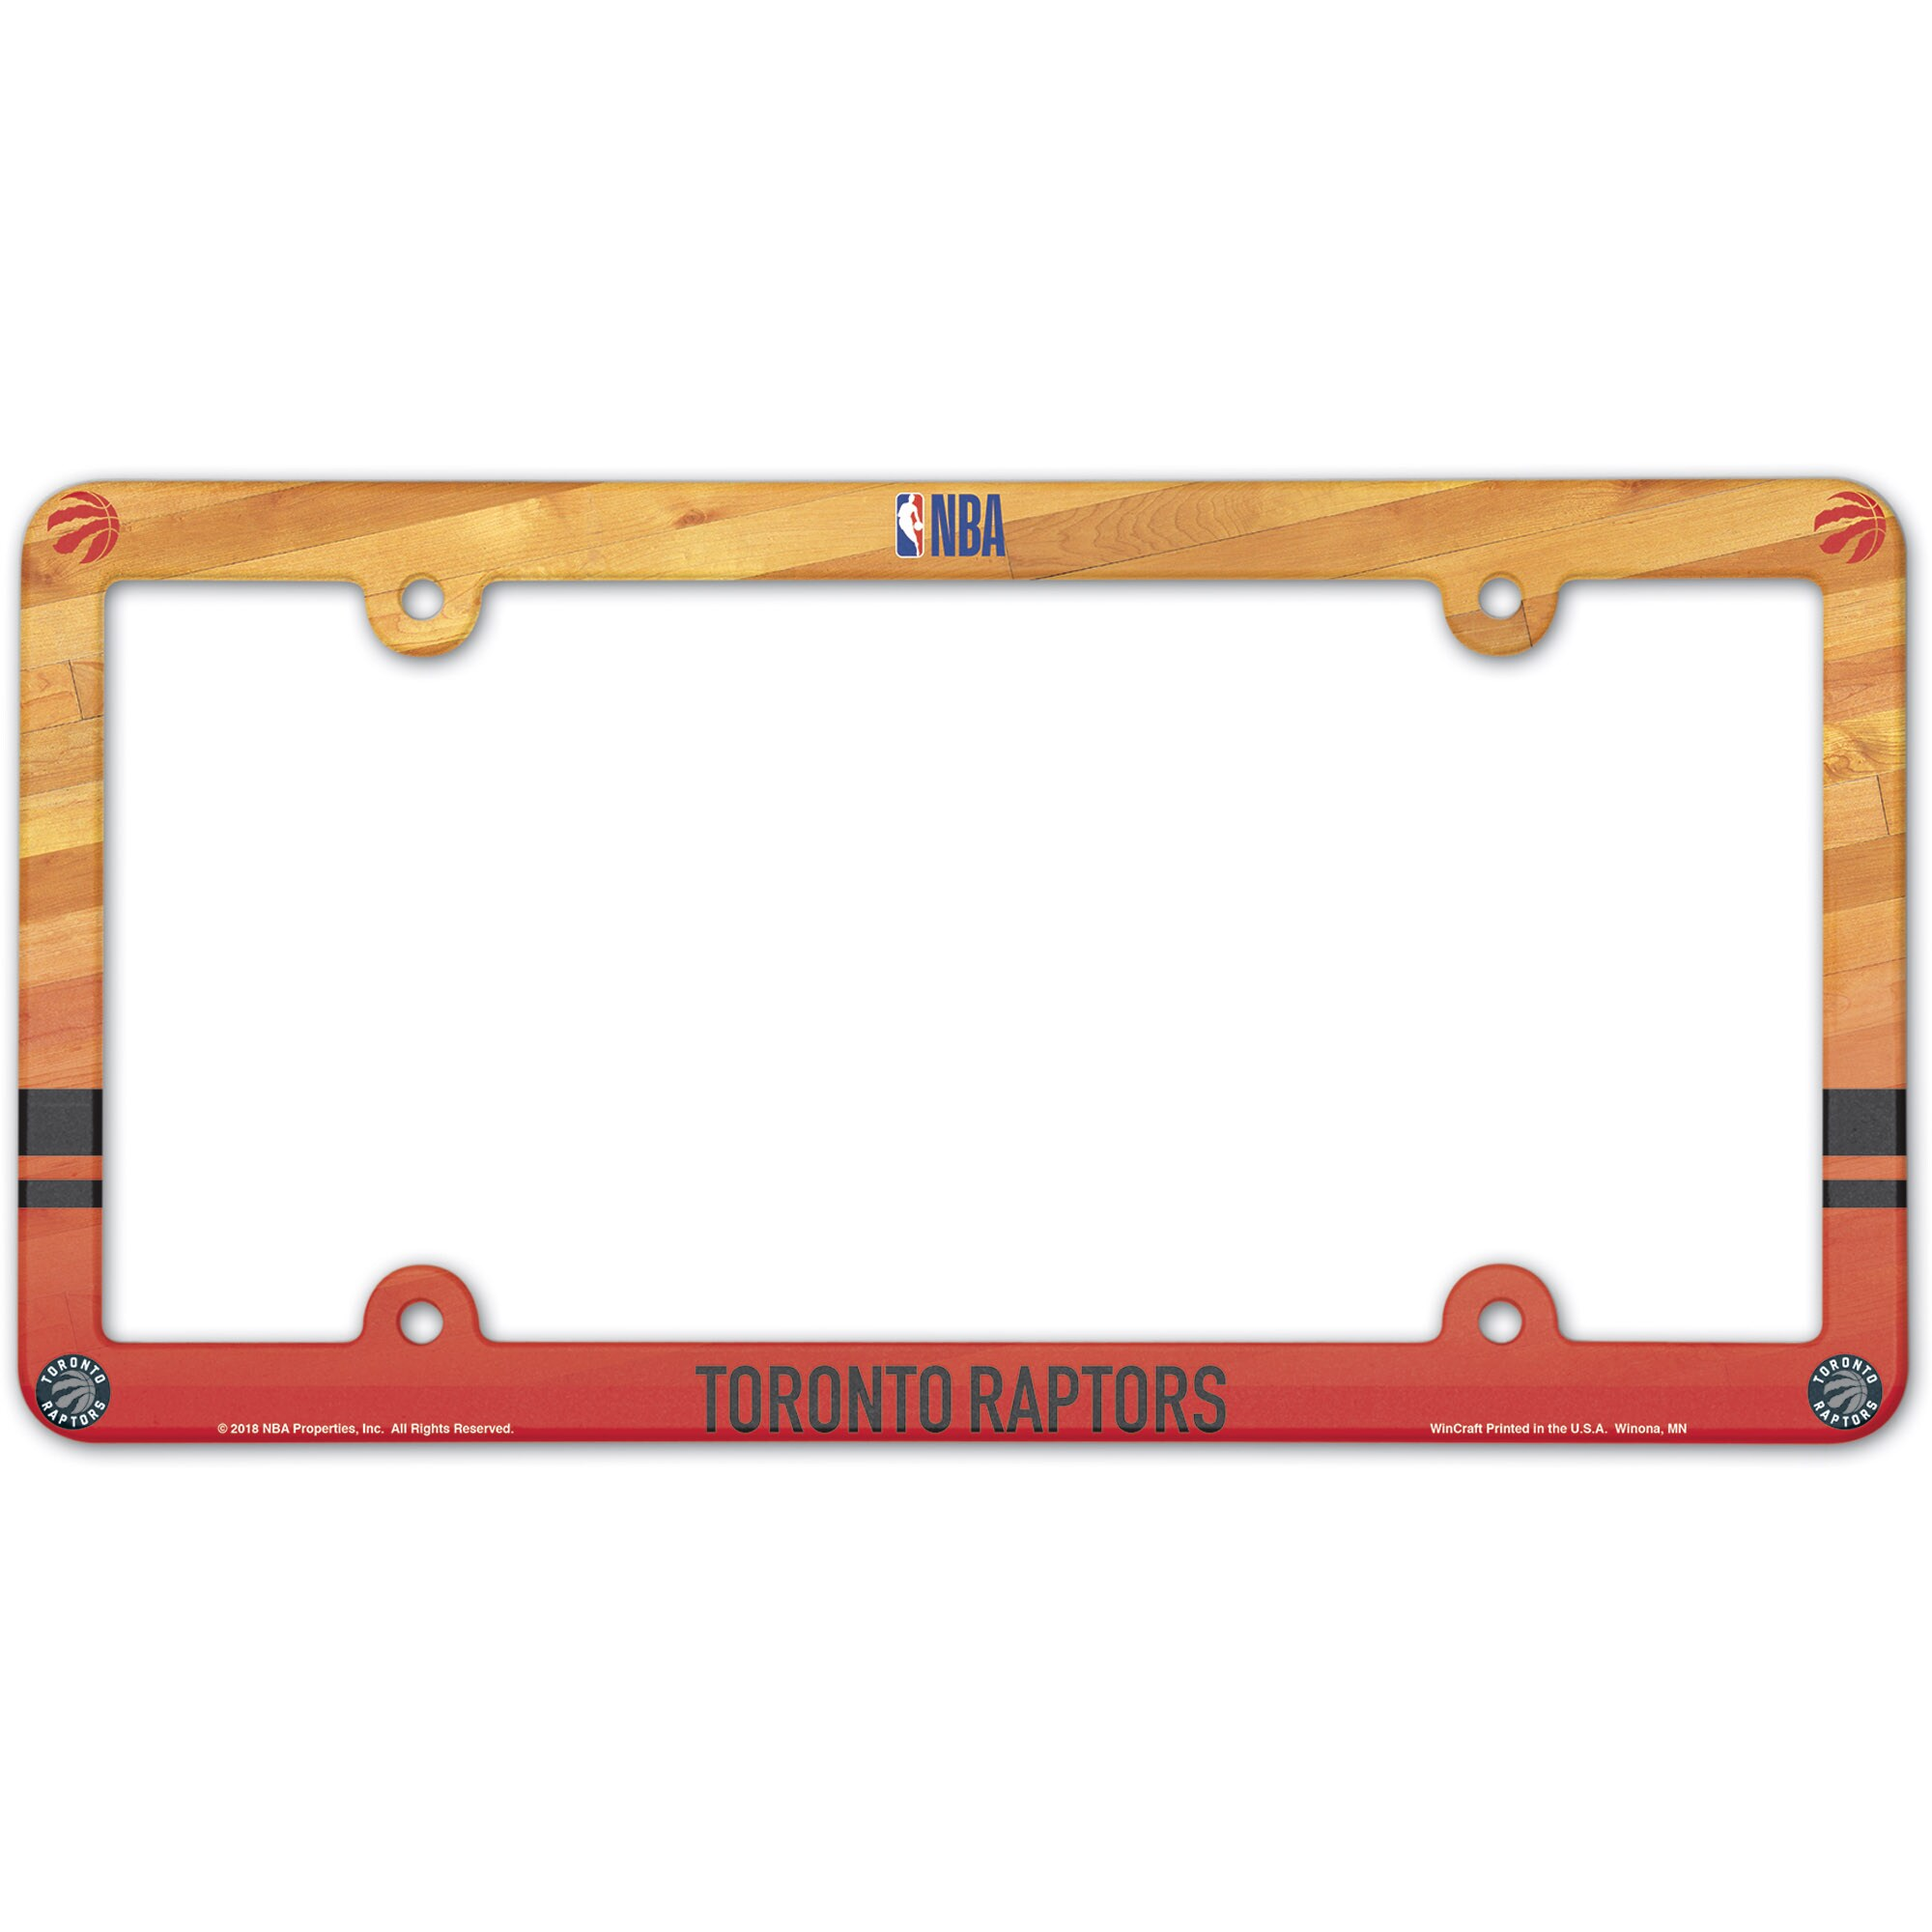 Toronto Raptors WinCraft Team License Plate Frame